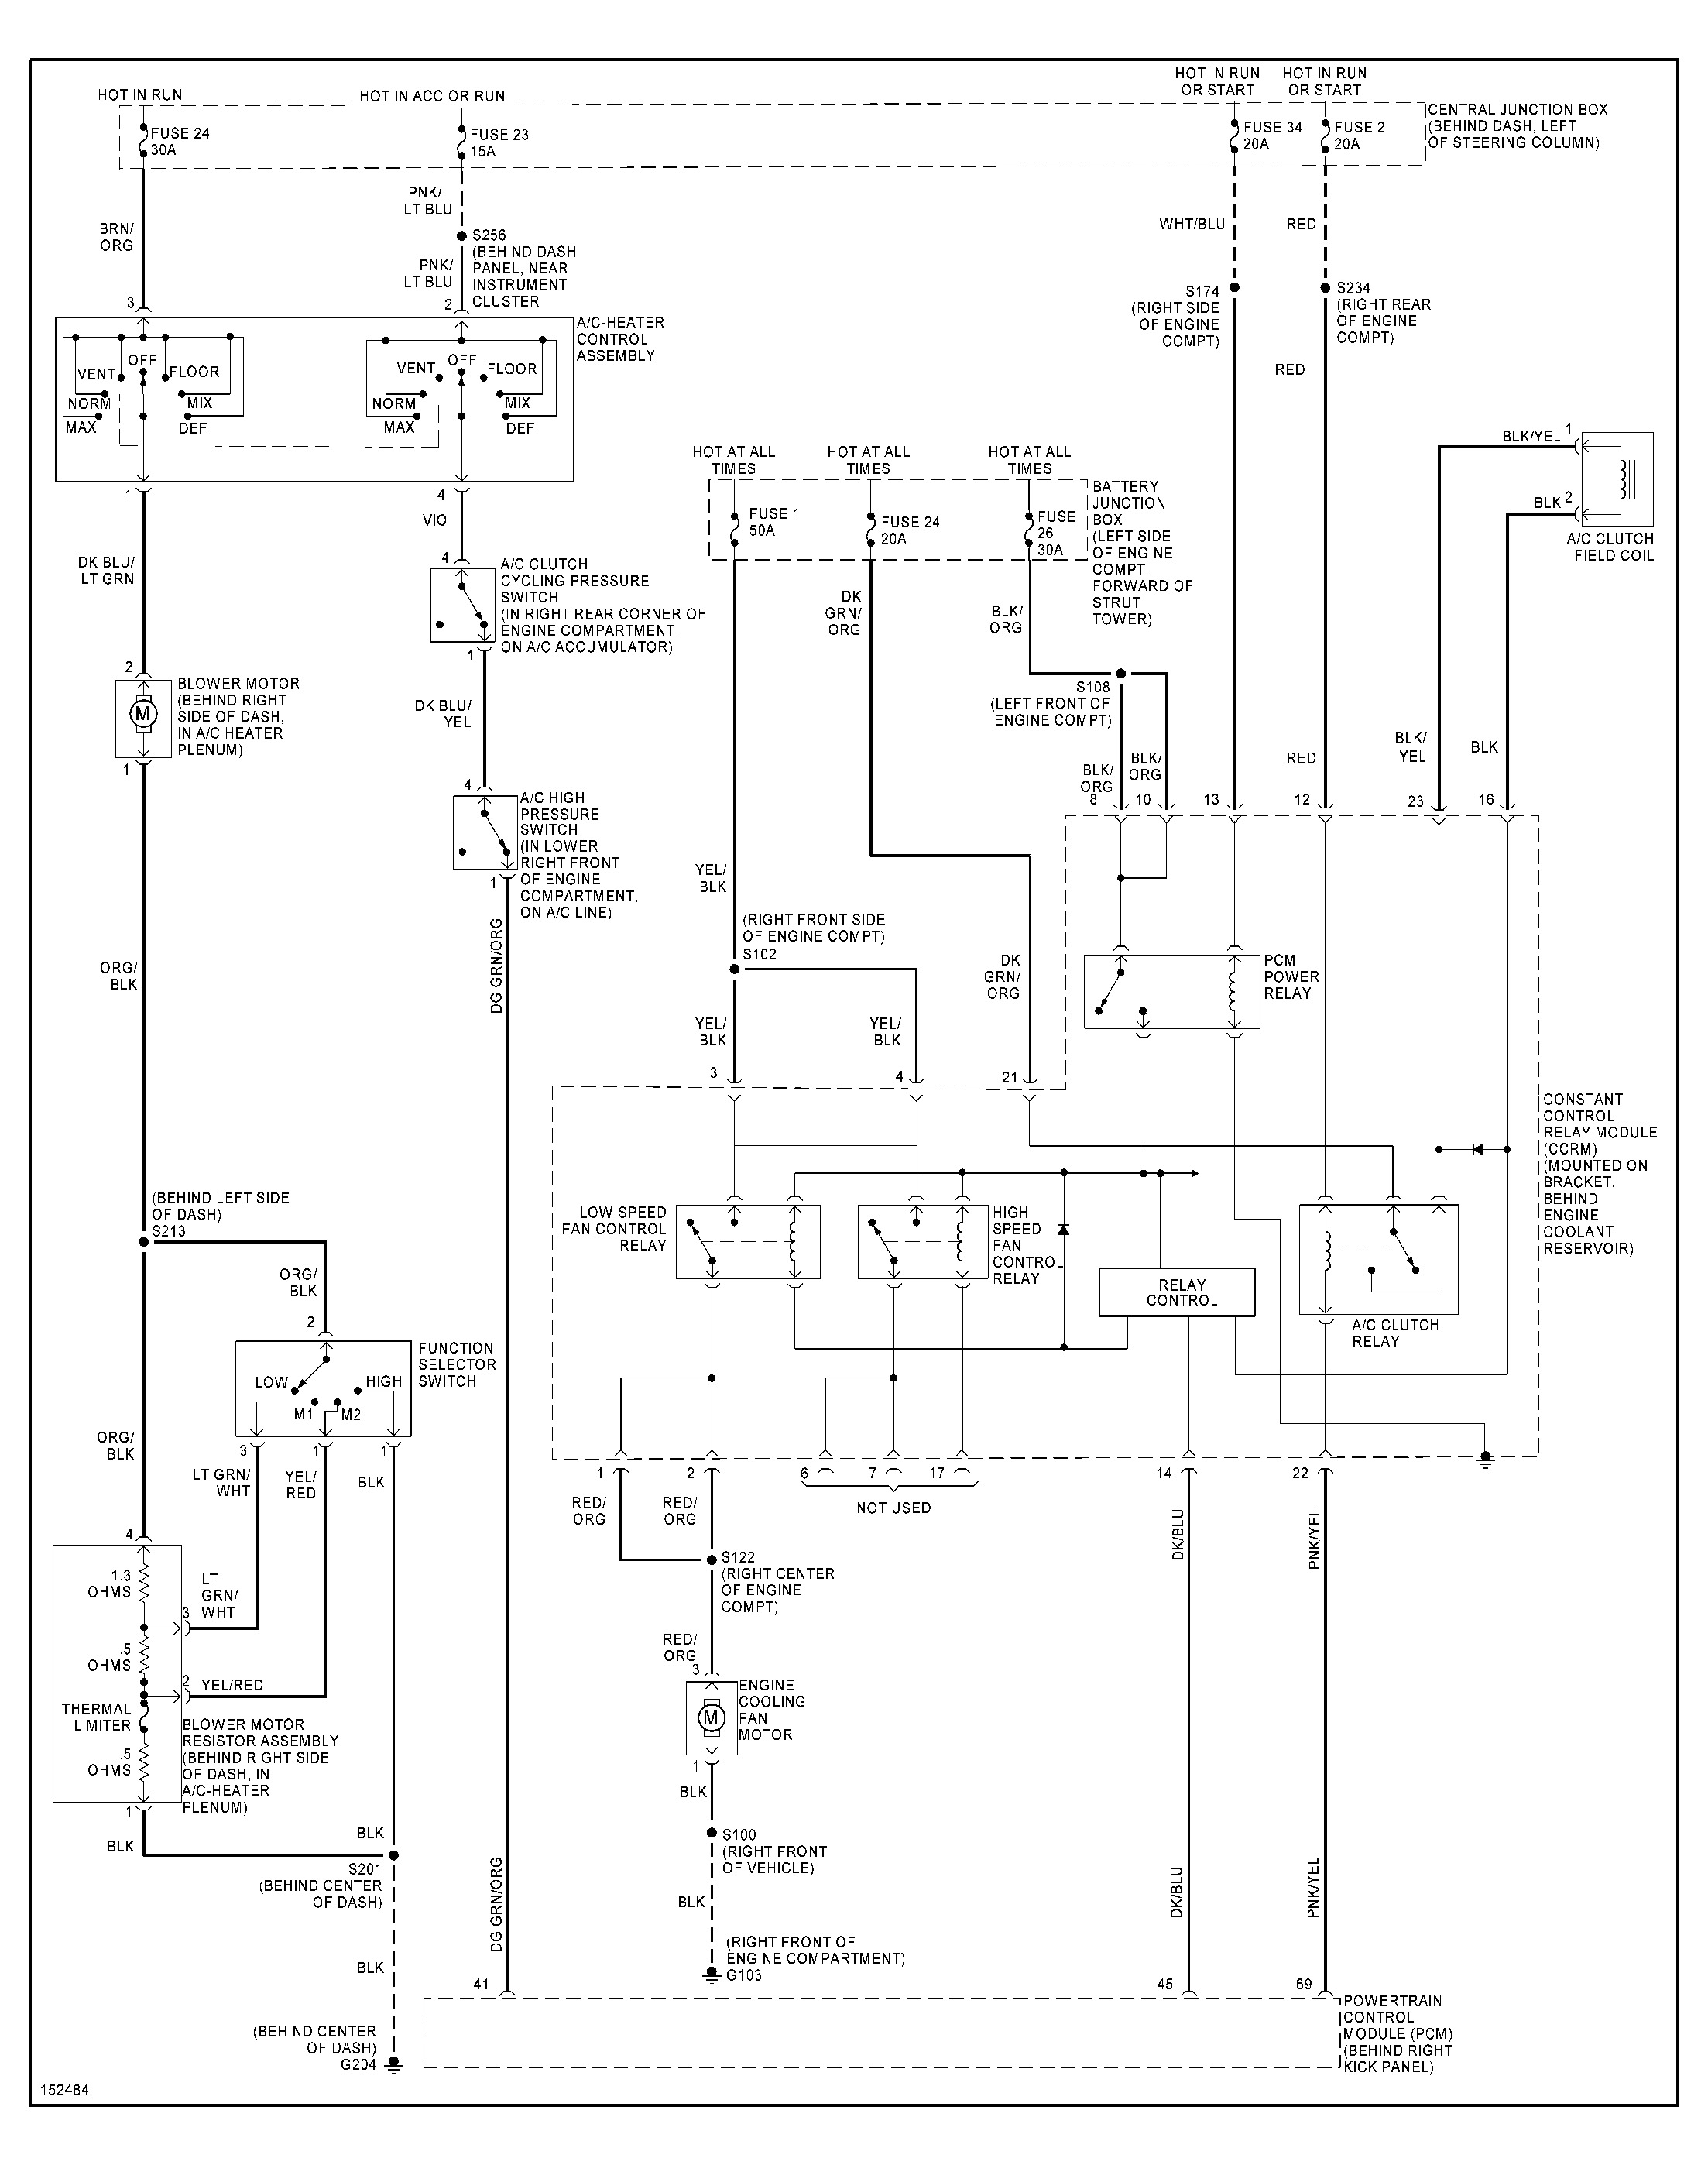 wiring diagram for a pressure switch for a well pump wiring square d well pump pressure switch wiring diagram solidfonts on wiring diagram for a pressure switch